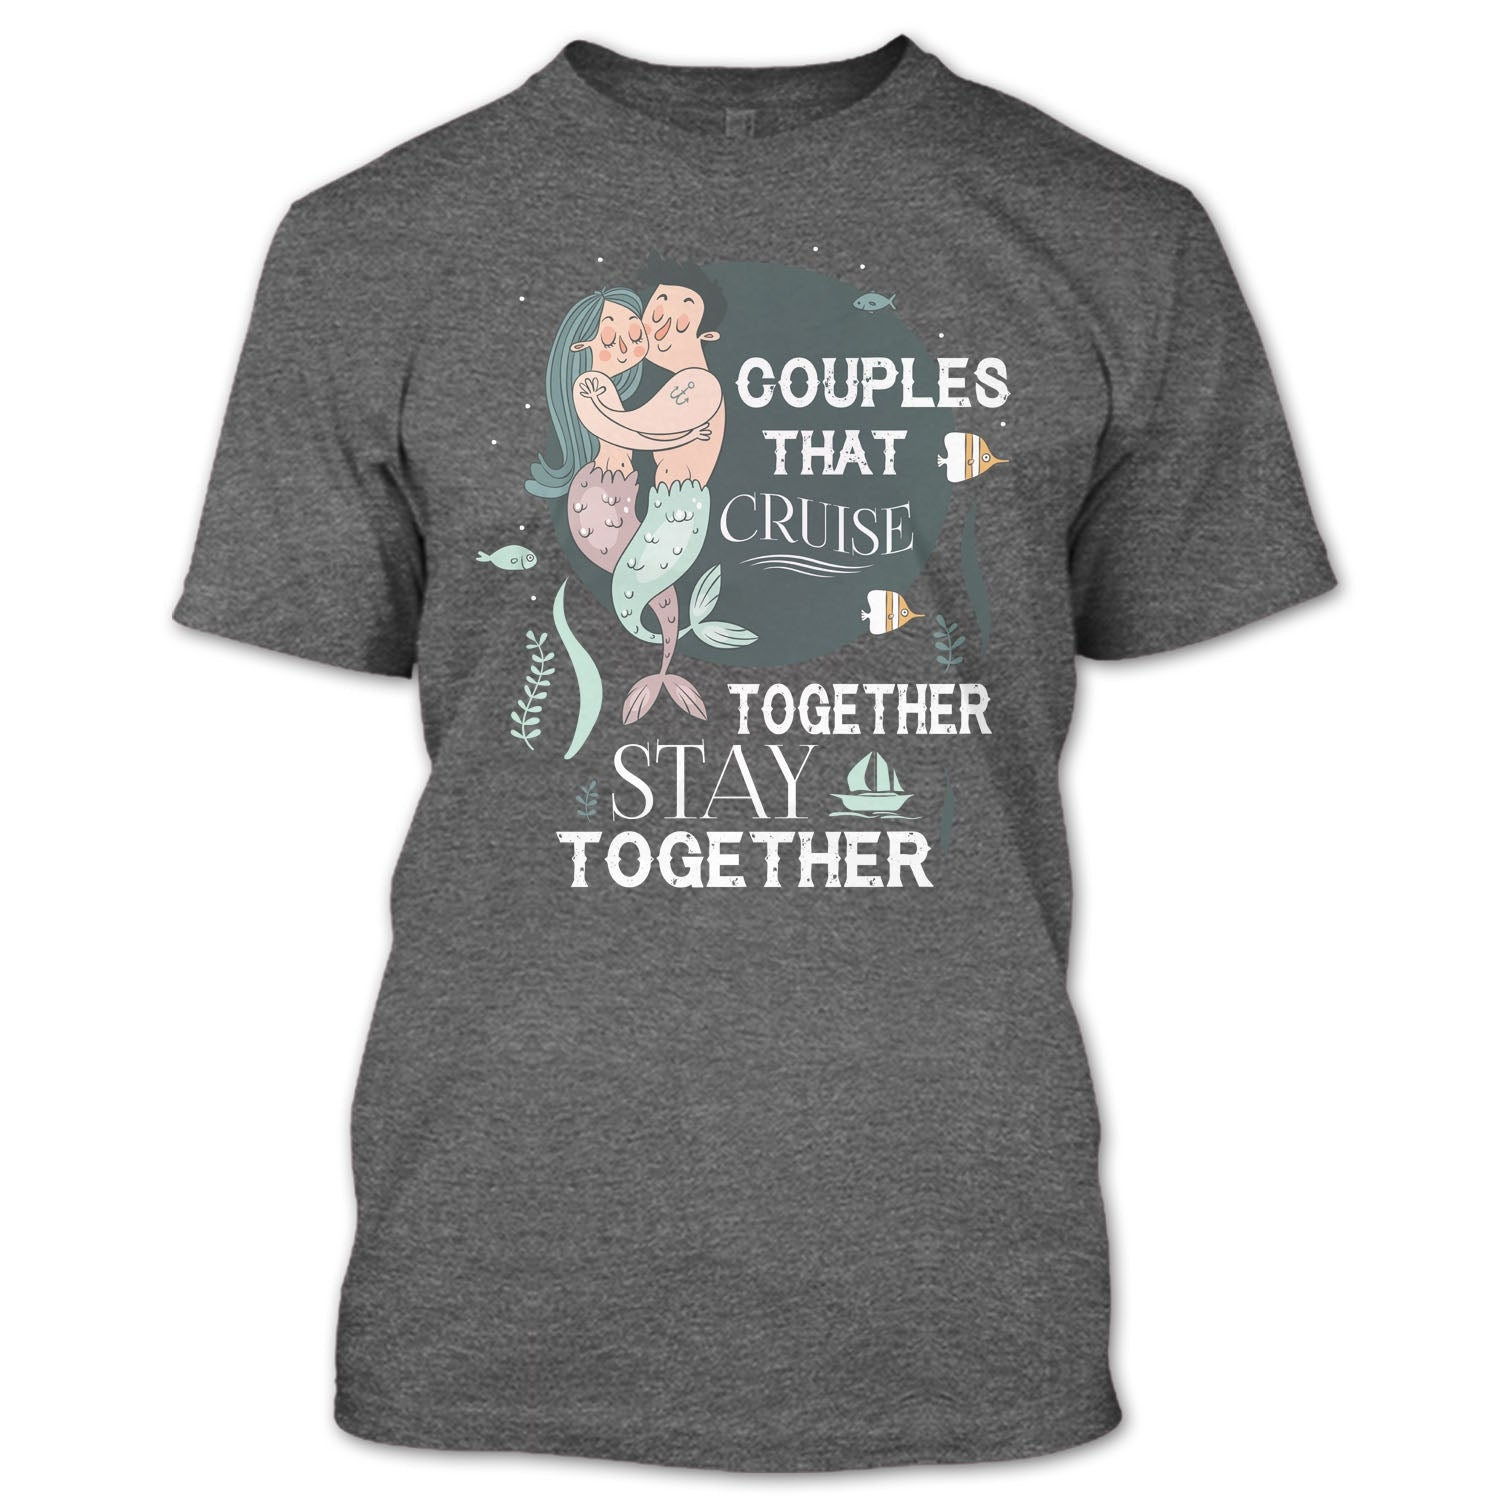 b9009f63 Couples That Cruise Together Stay Together T Shirt, Husband And Wife T Shirt